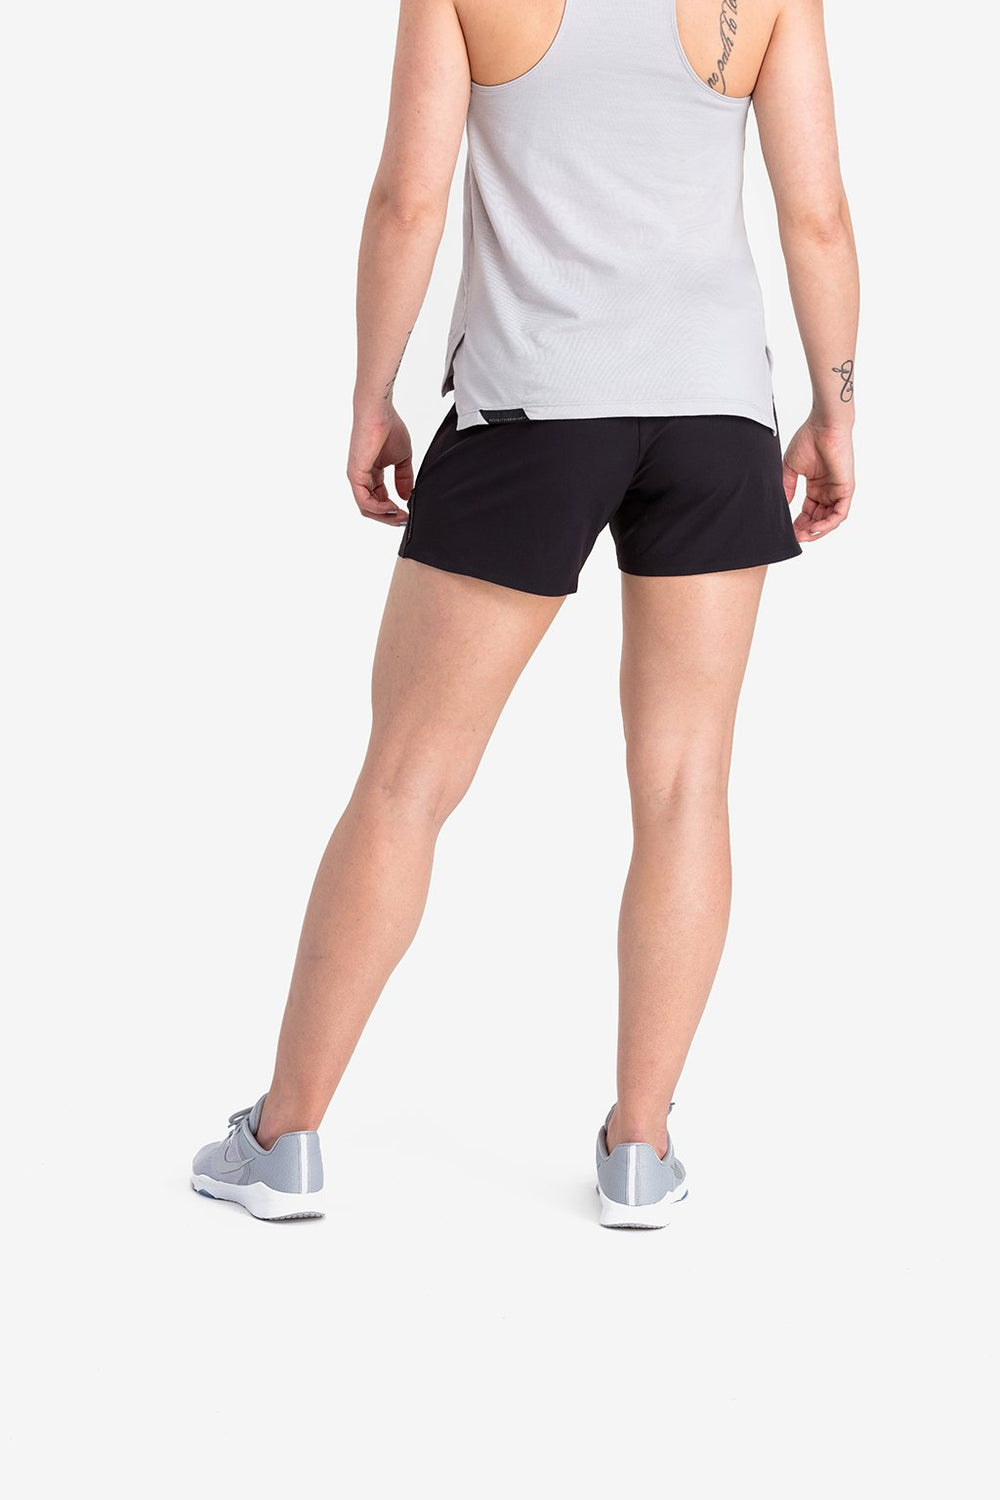 RYU Womens Power Short in Black